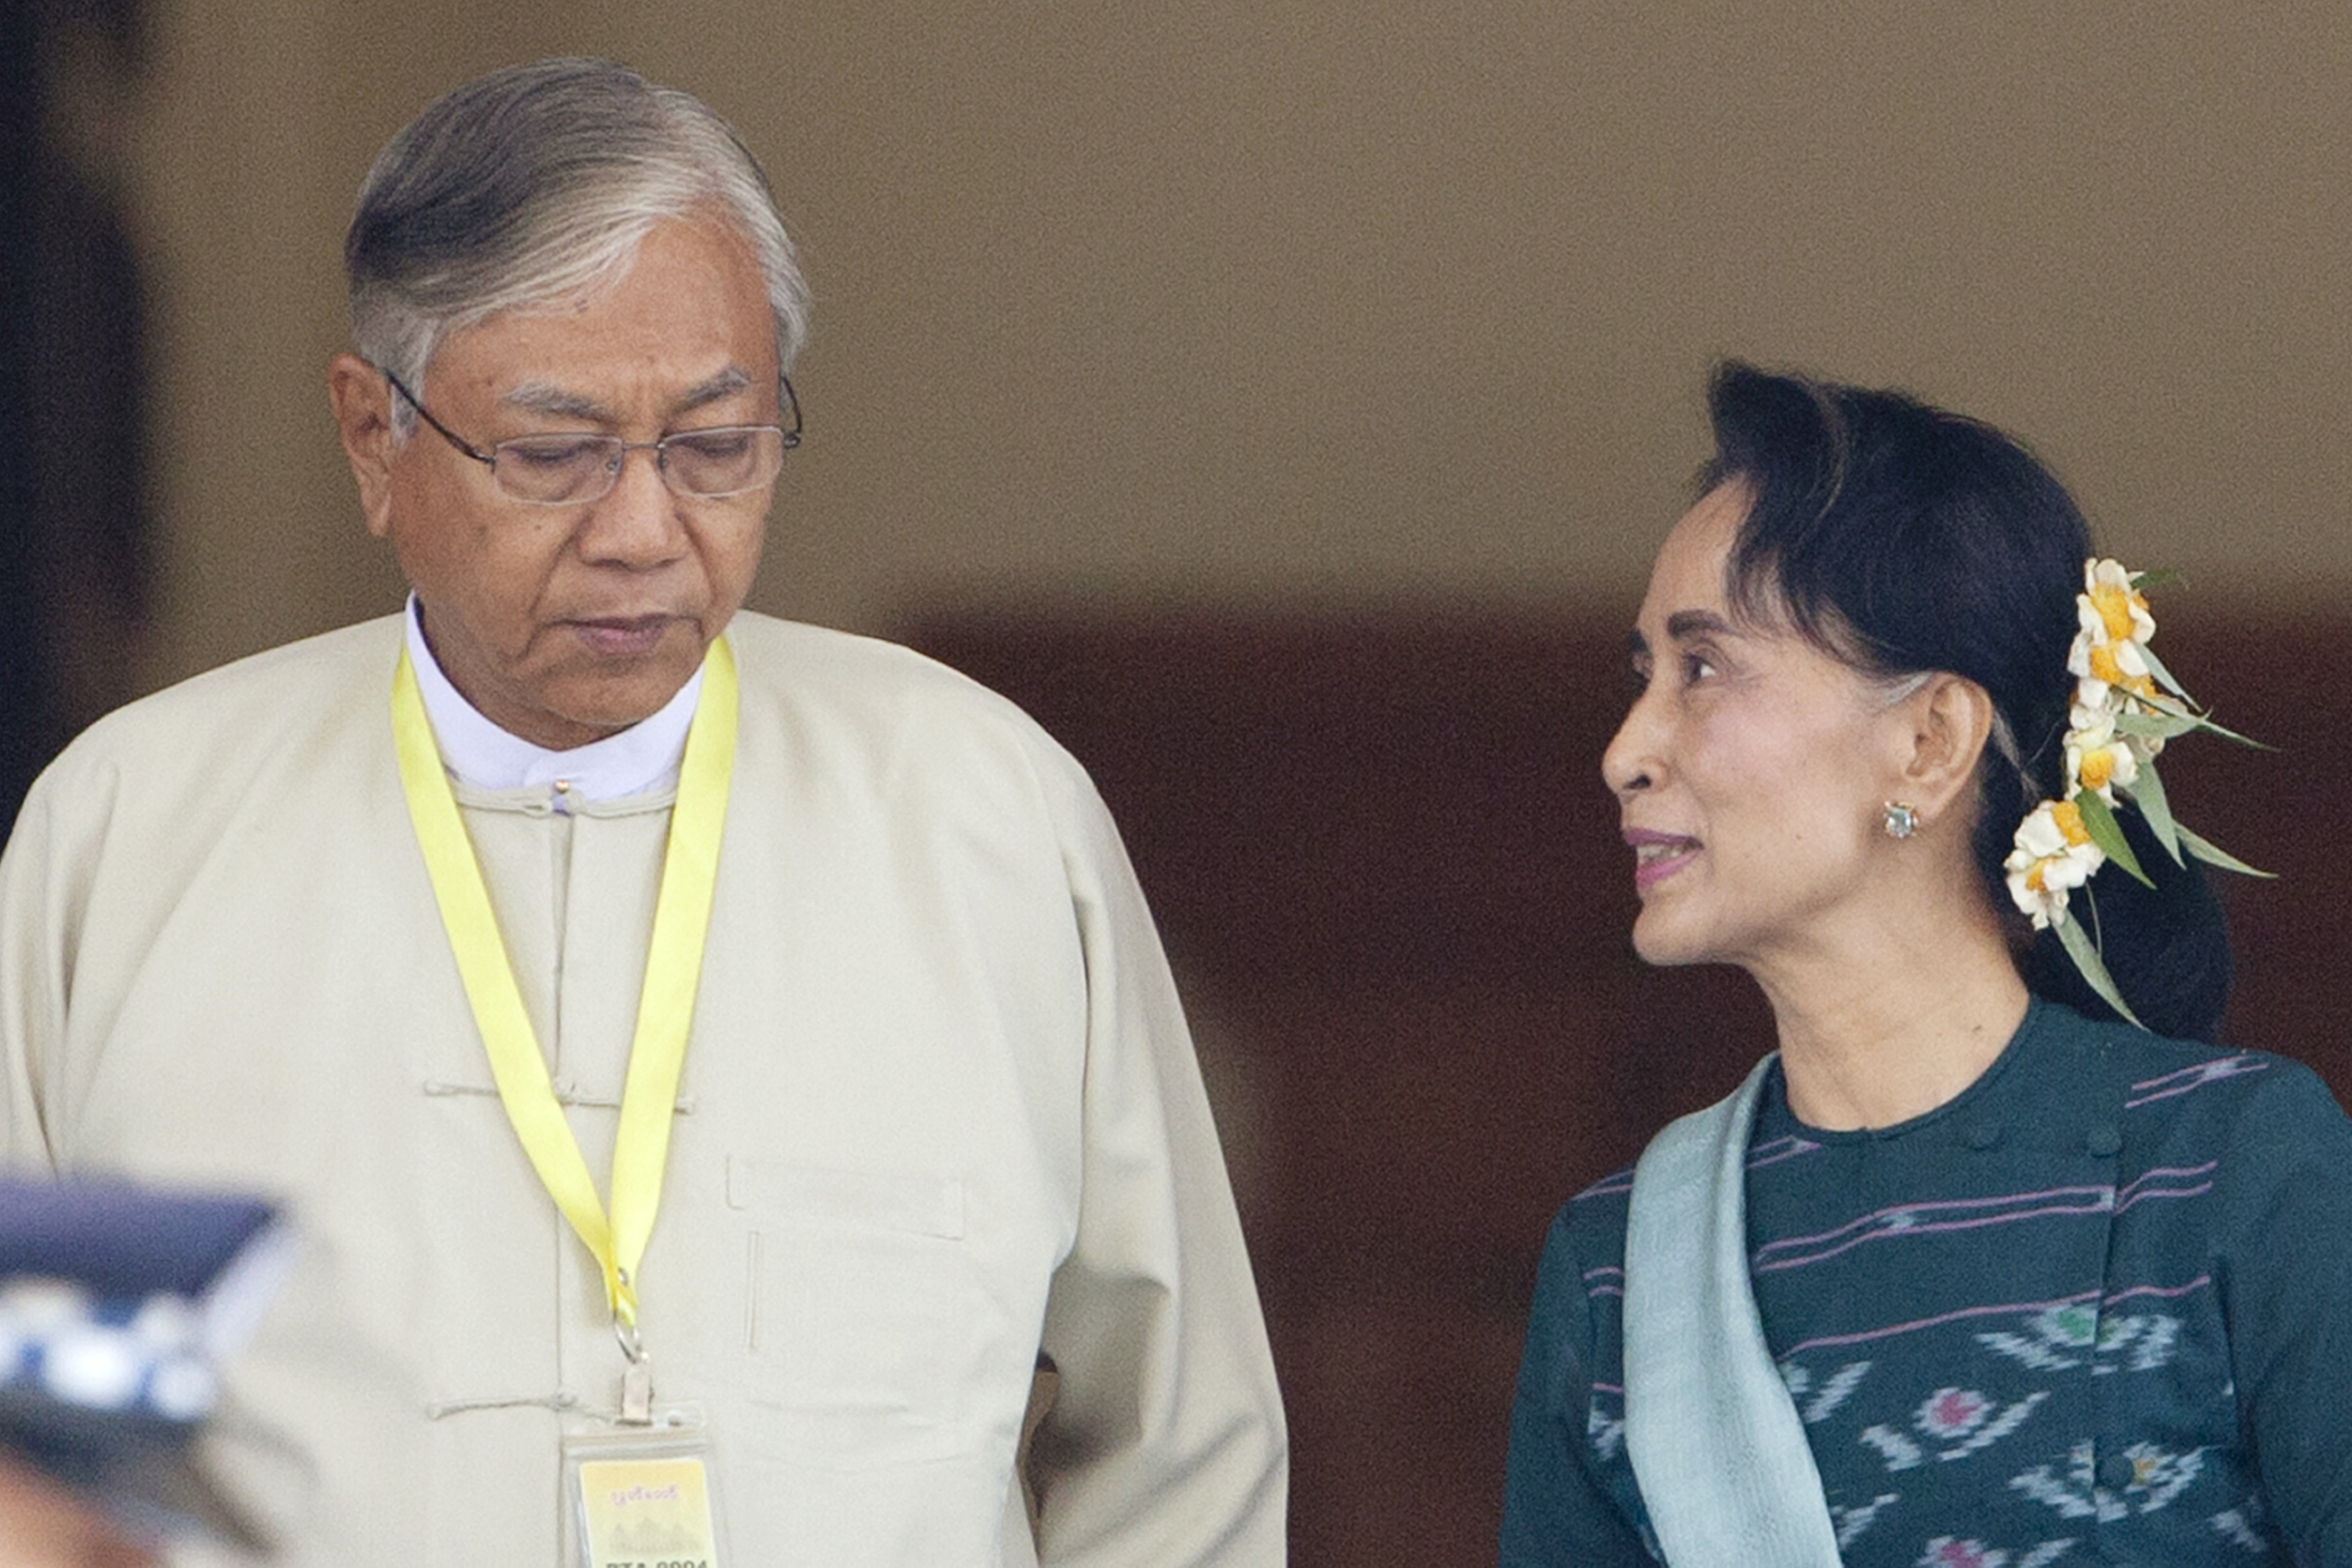 Htin Kyaw, left, newly elected president of Myanmar, walks with National League for Democracy leader Aung San Suu Kyi at Myanmar's parliament in Naypyitaw, Myanmar, Tuesday, March 15, 2016.